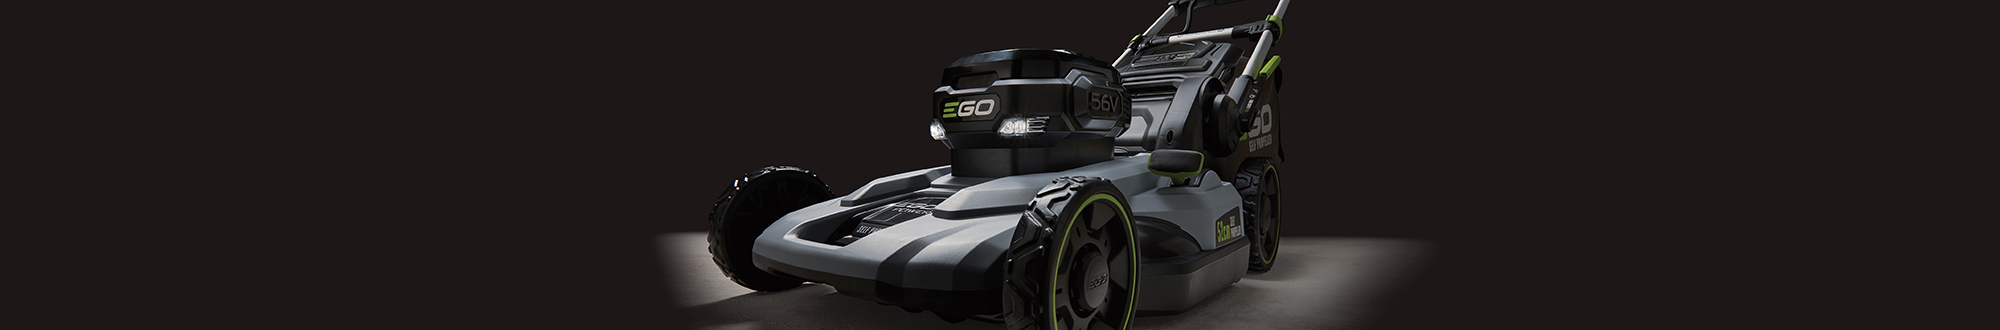 Ego Power Plus - Ego Power+ Mowers